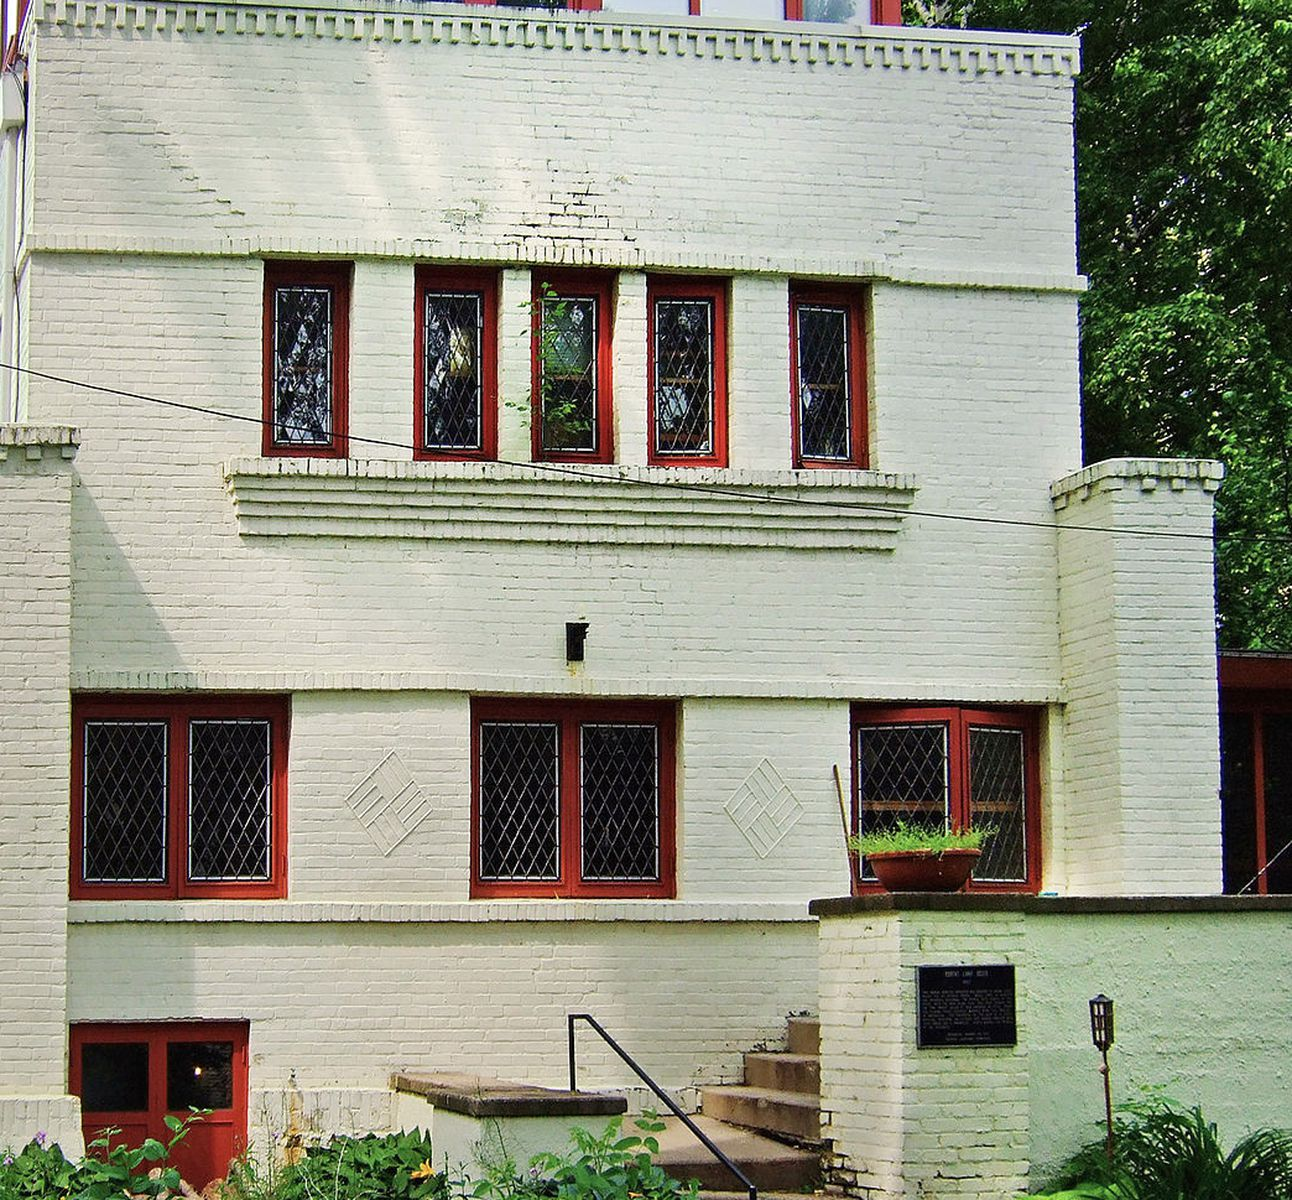 2. Robert Lamp House